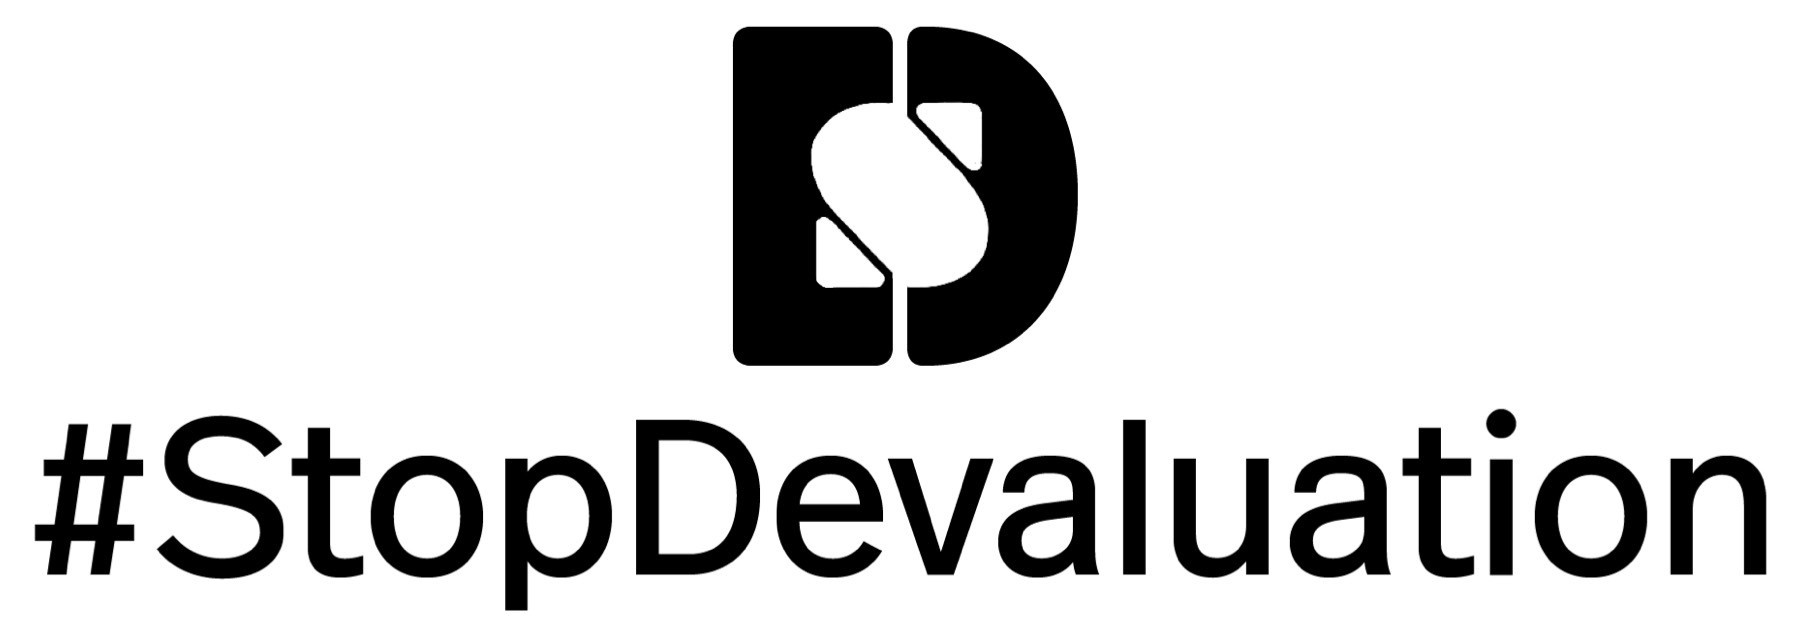 #StopDevaluation